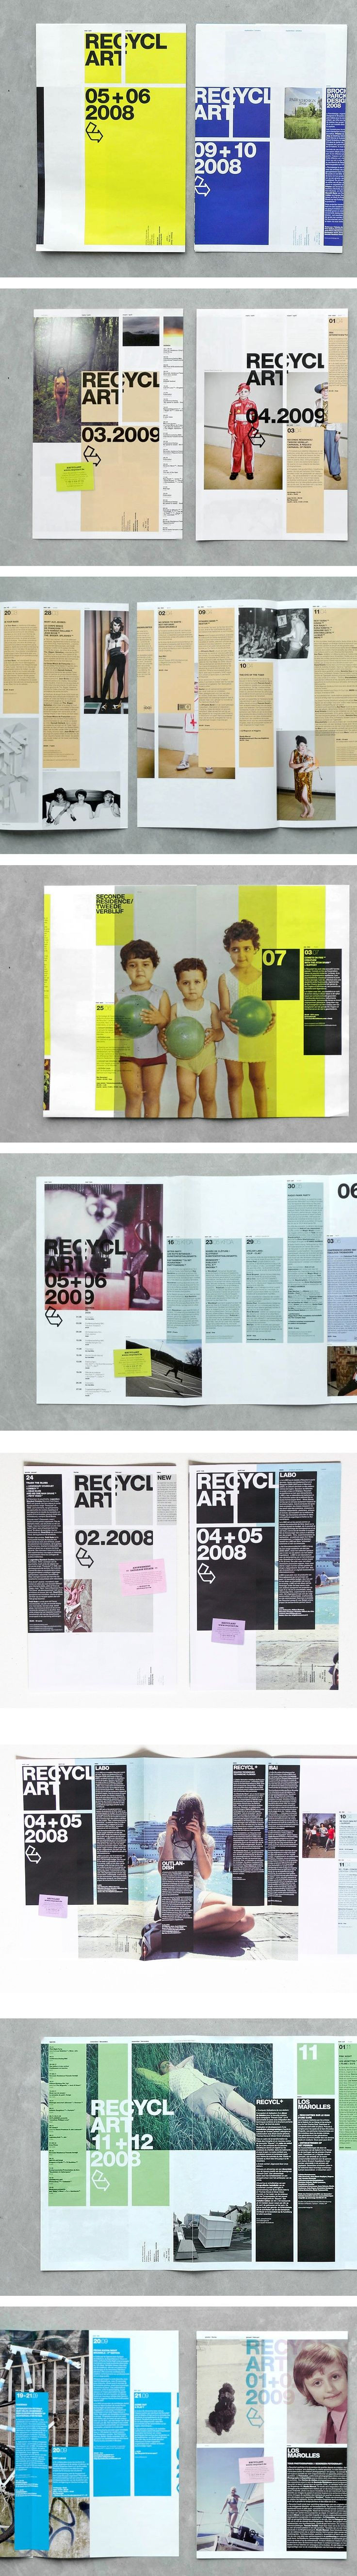 Color art magazine - Recyclart 2009 Magazine Layout I Really Like The Color Blocks And The Photos And